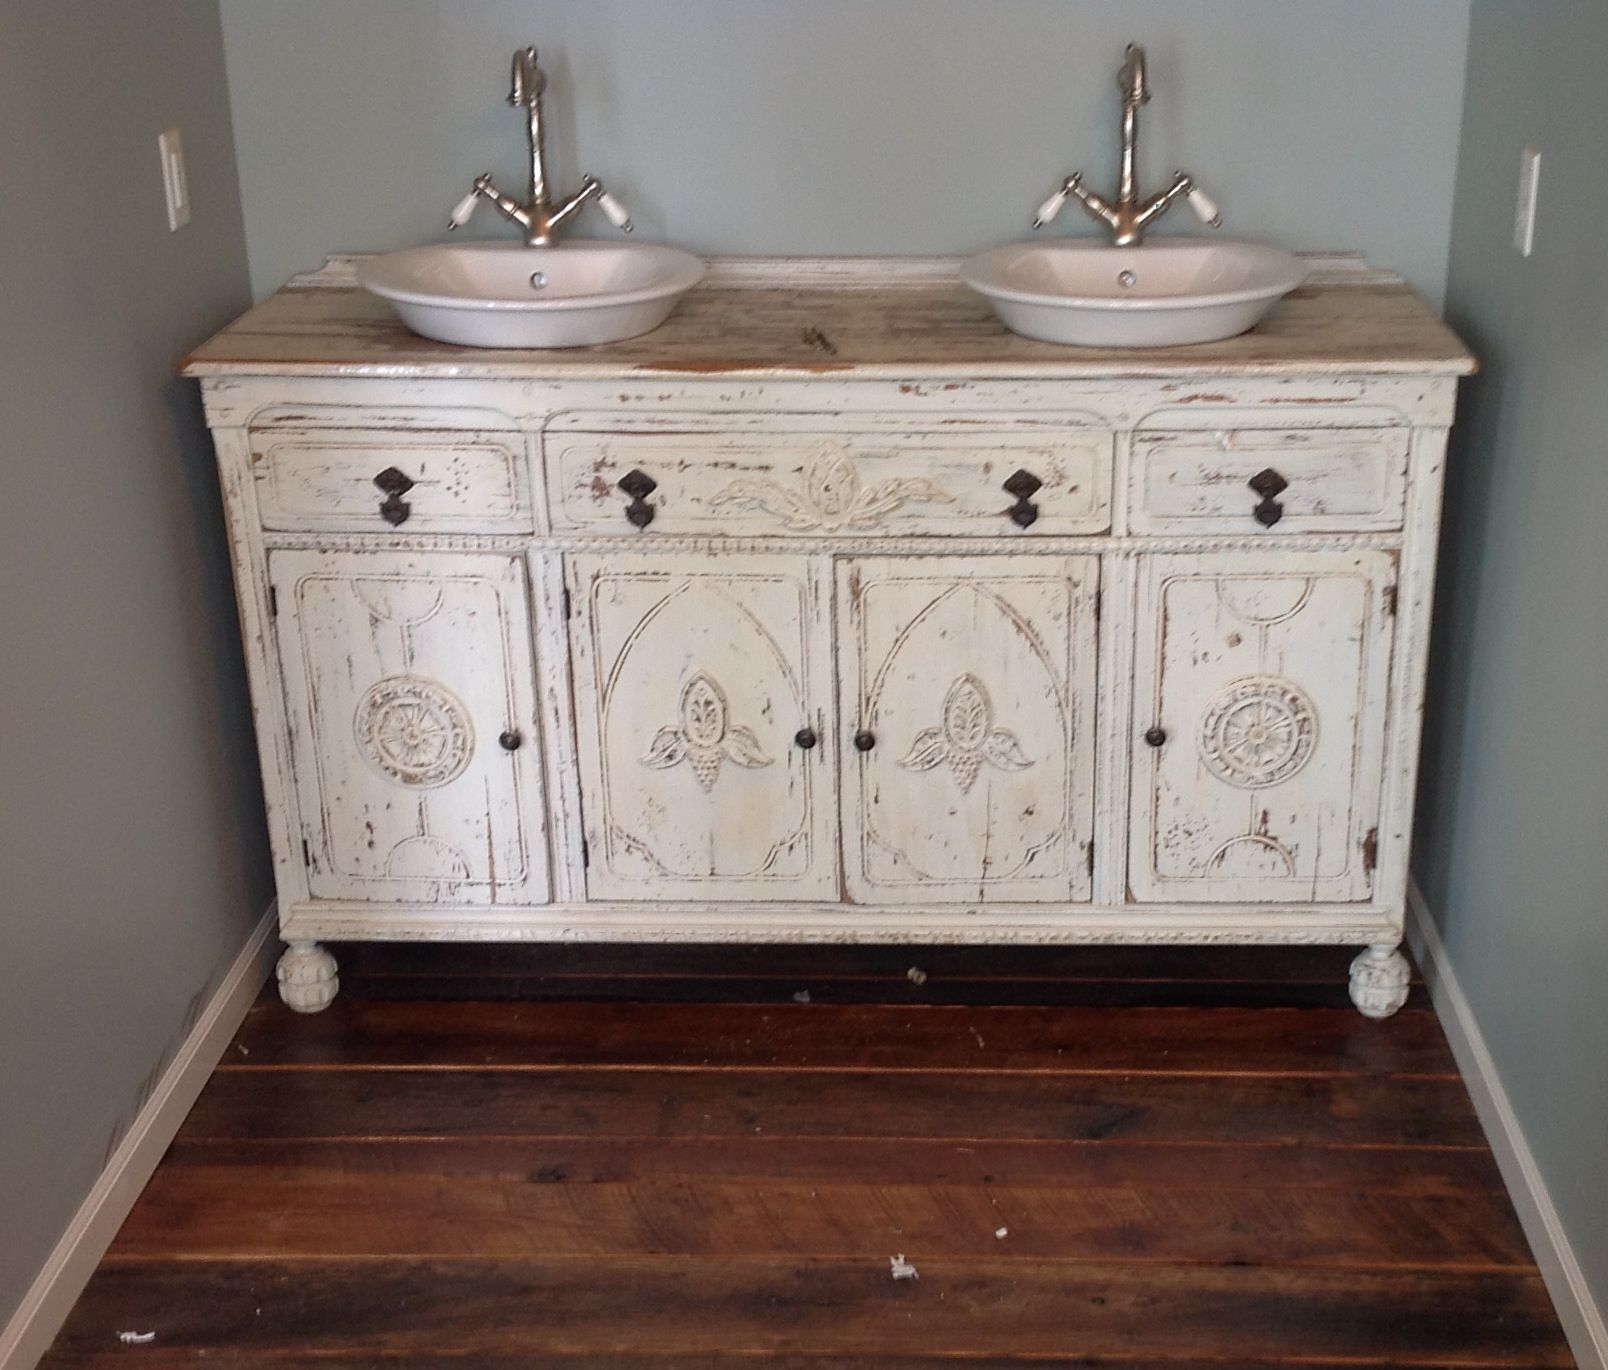 Superb Painted Shabby Chic Repurposed Bathroom Sink Vanity. Repurposed From An Old  Antique Buffet Cabinet.